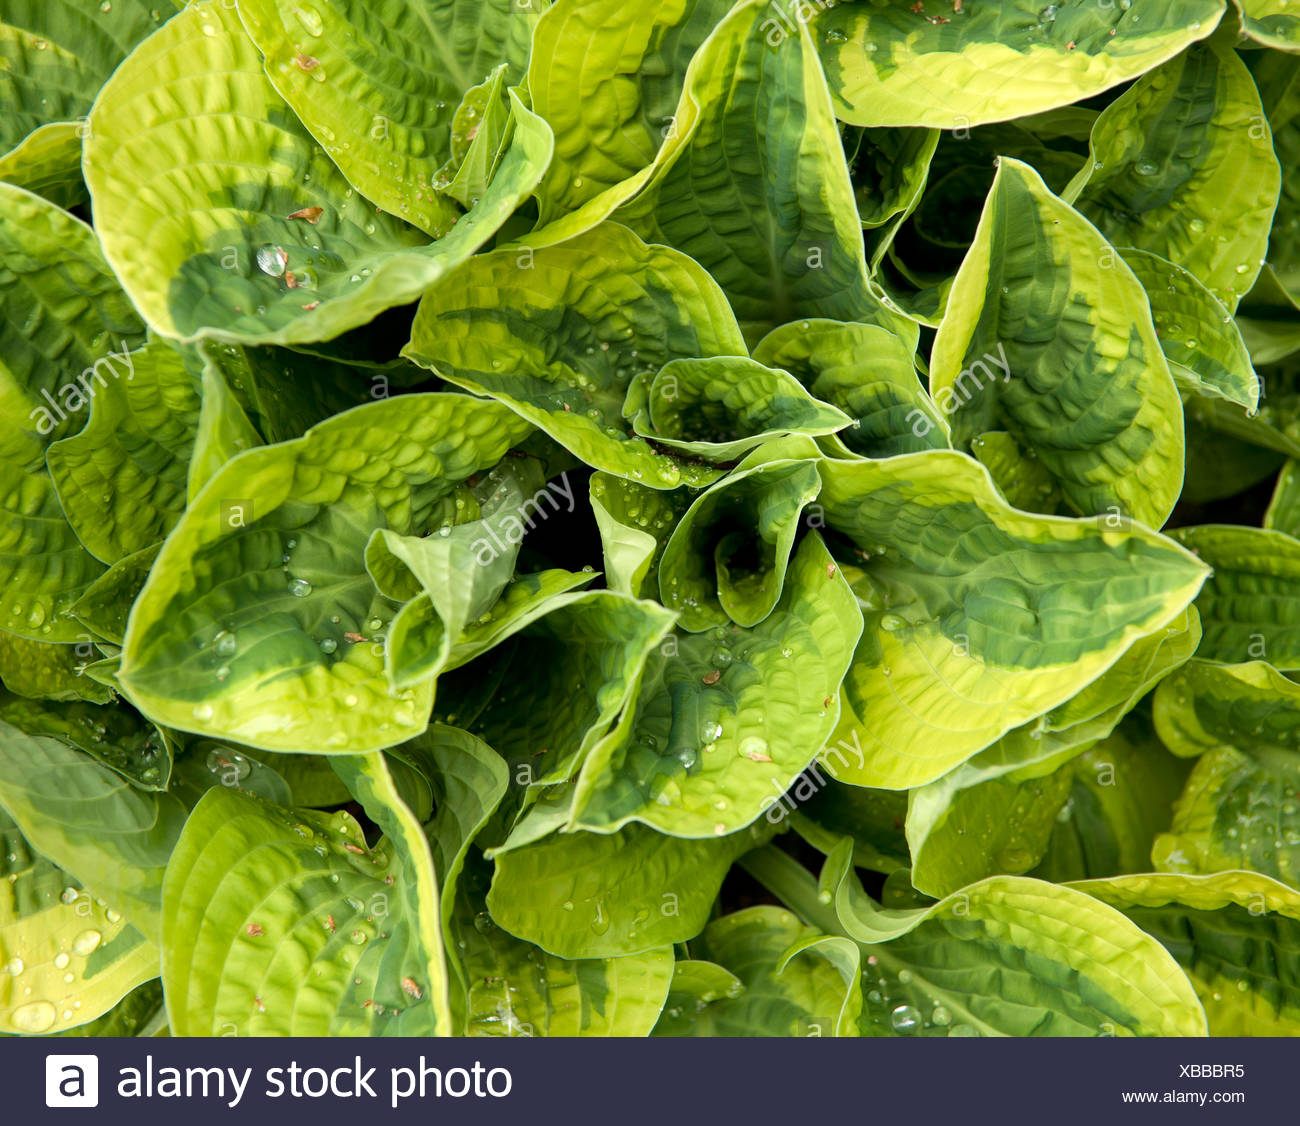 A hosta plant with variegated leaves - Stock Image